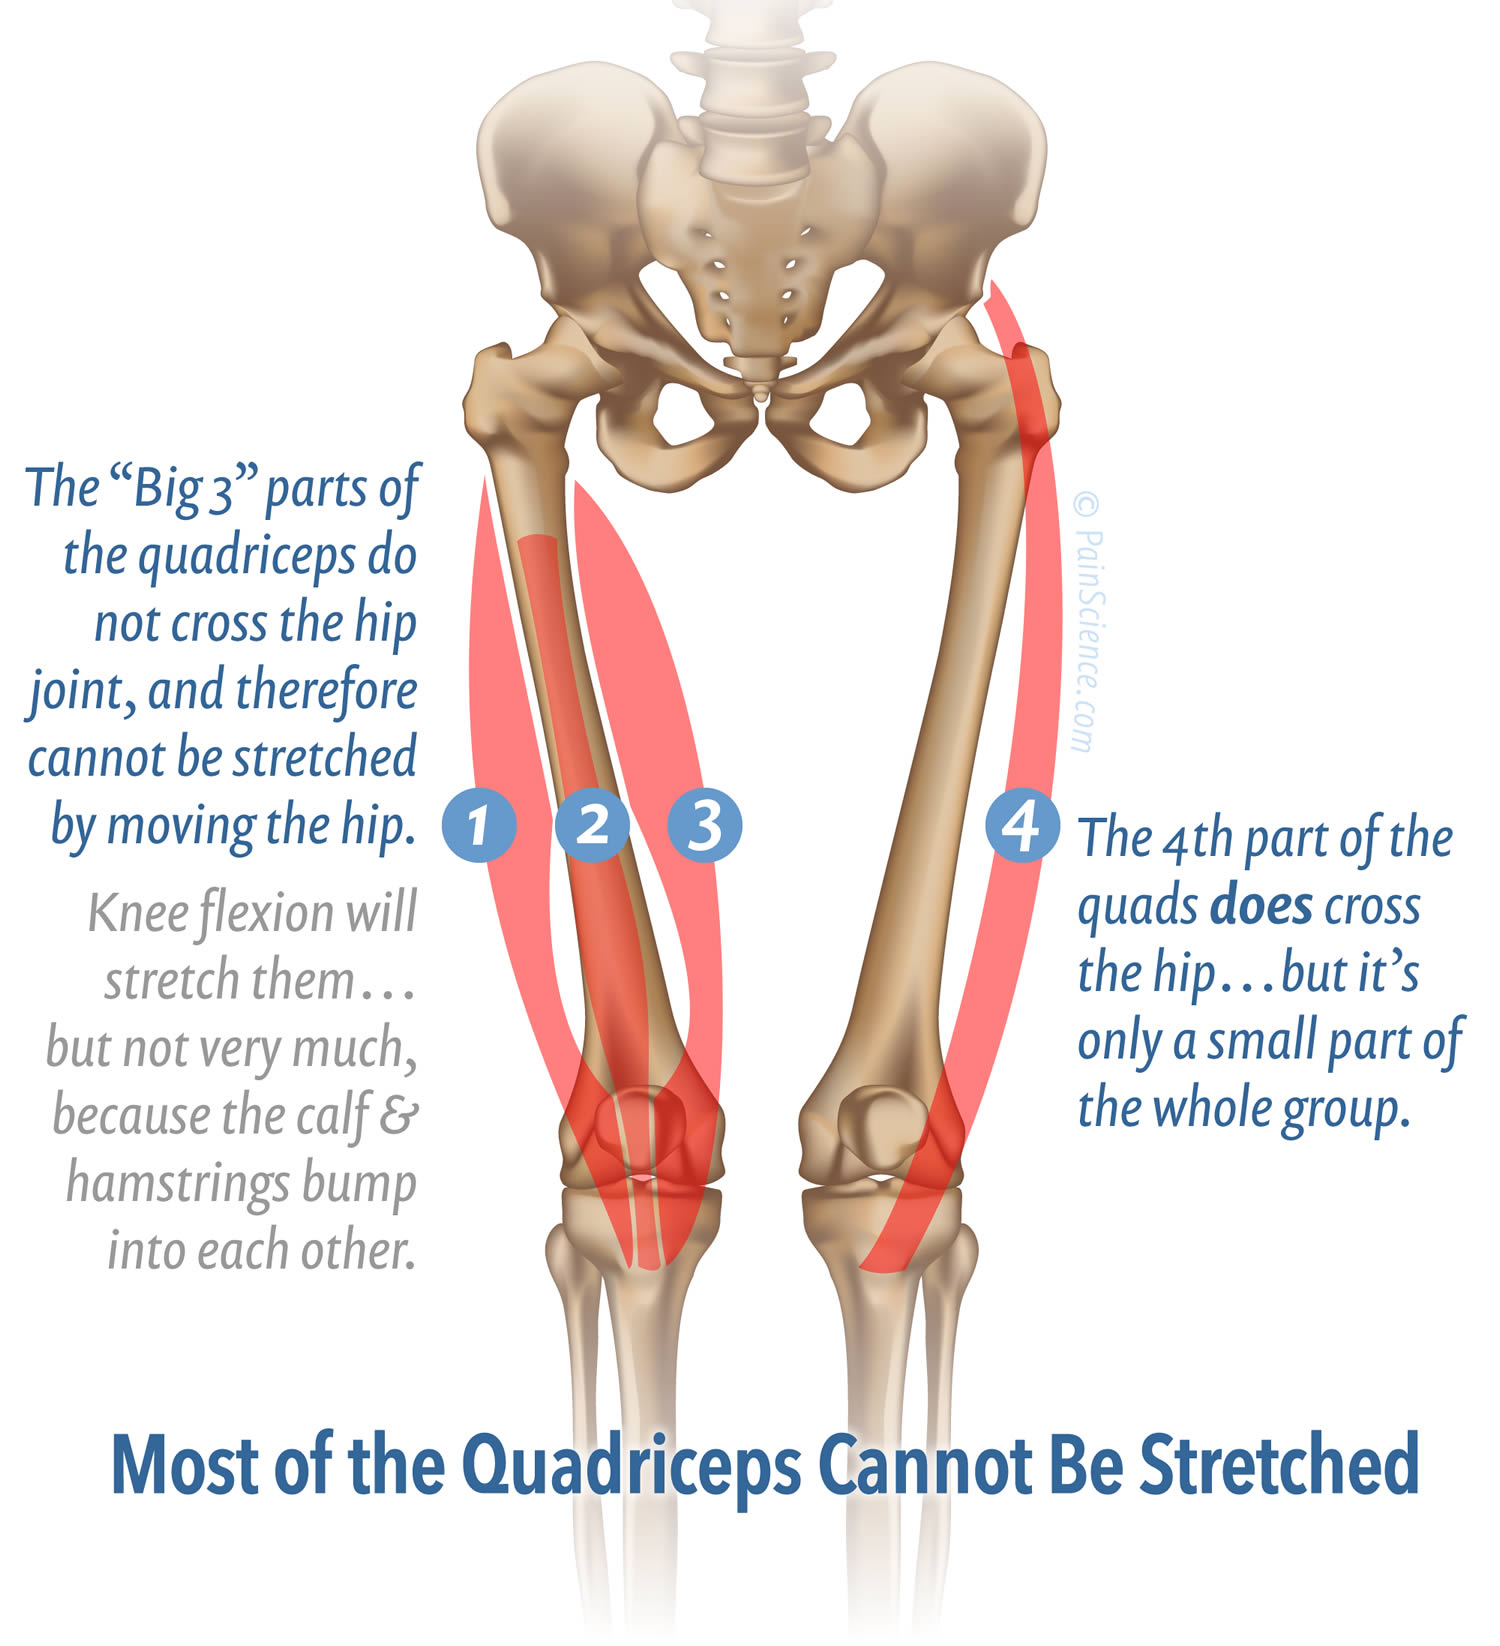 hight resolution of the vasti are only elongated by knee flexion which is limited to about 120 when the calf hits the hamstrings the vasti cannot be stretched strongly